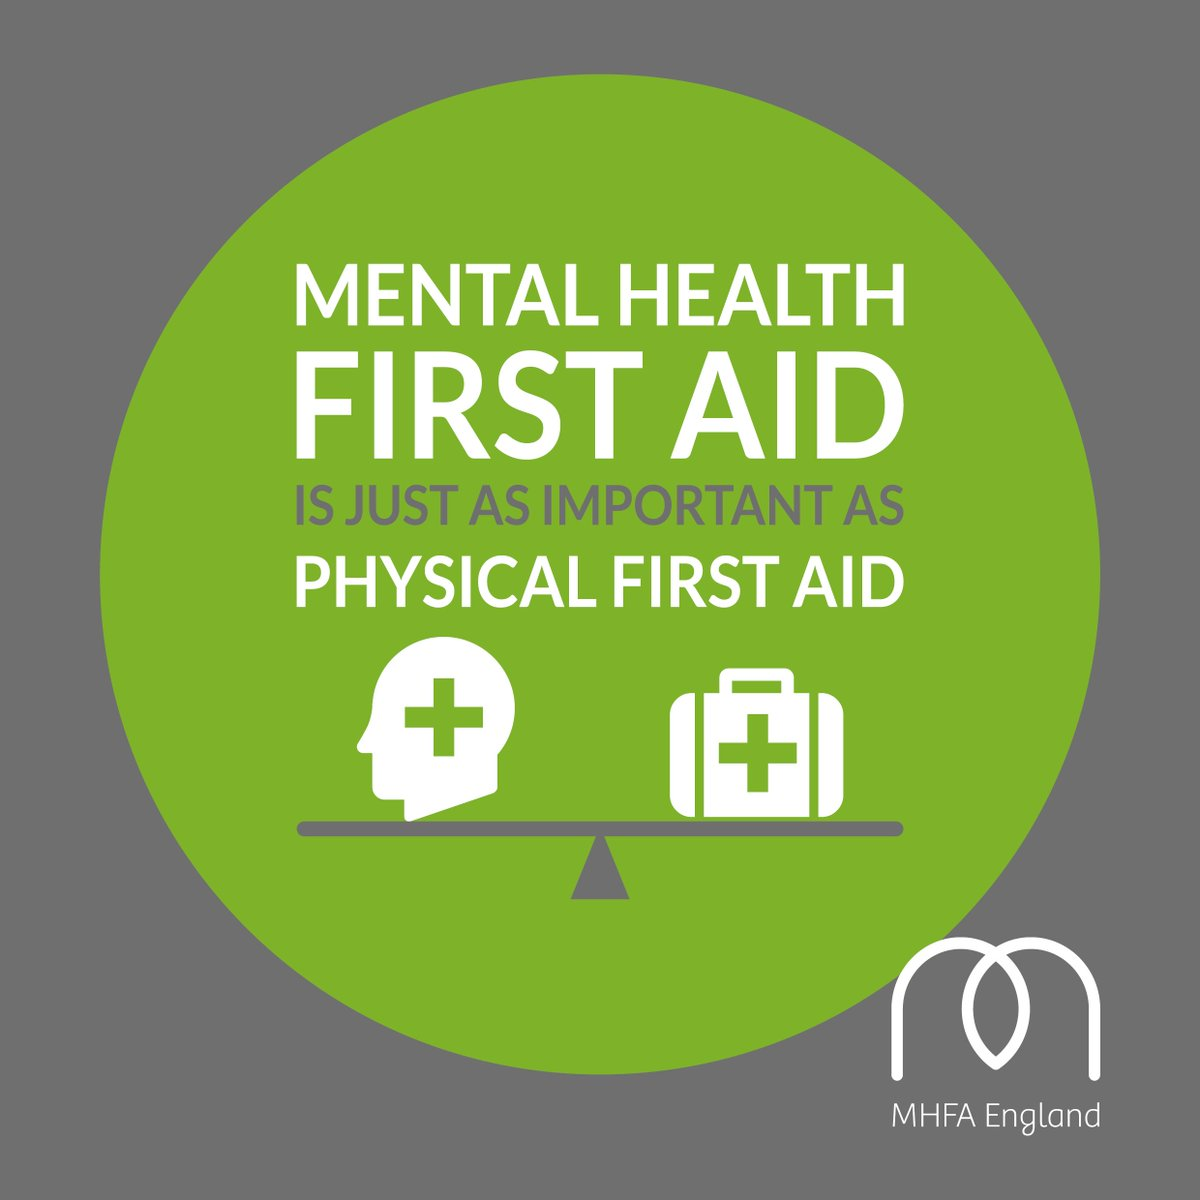 Mental Health First Aid as important as Physical first aid